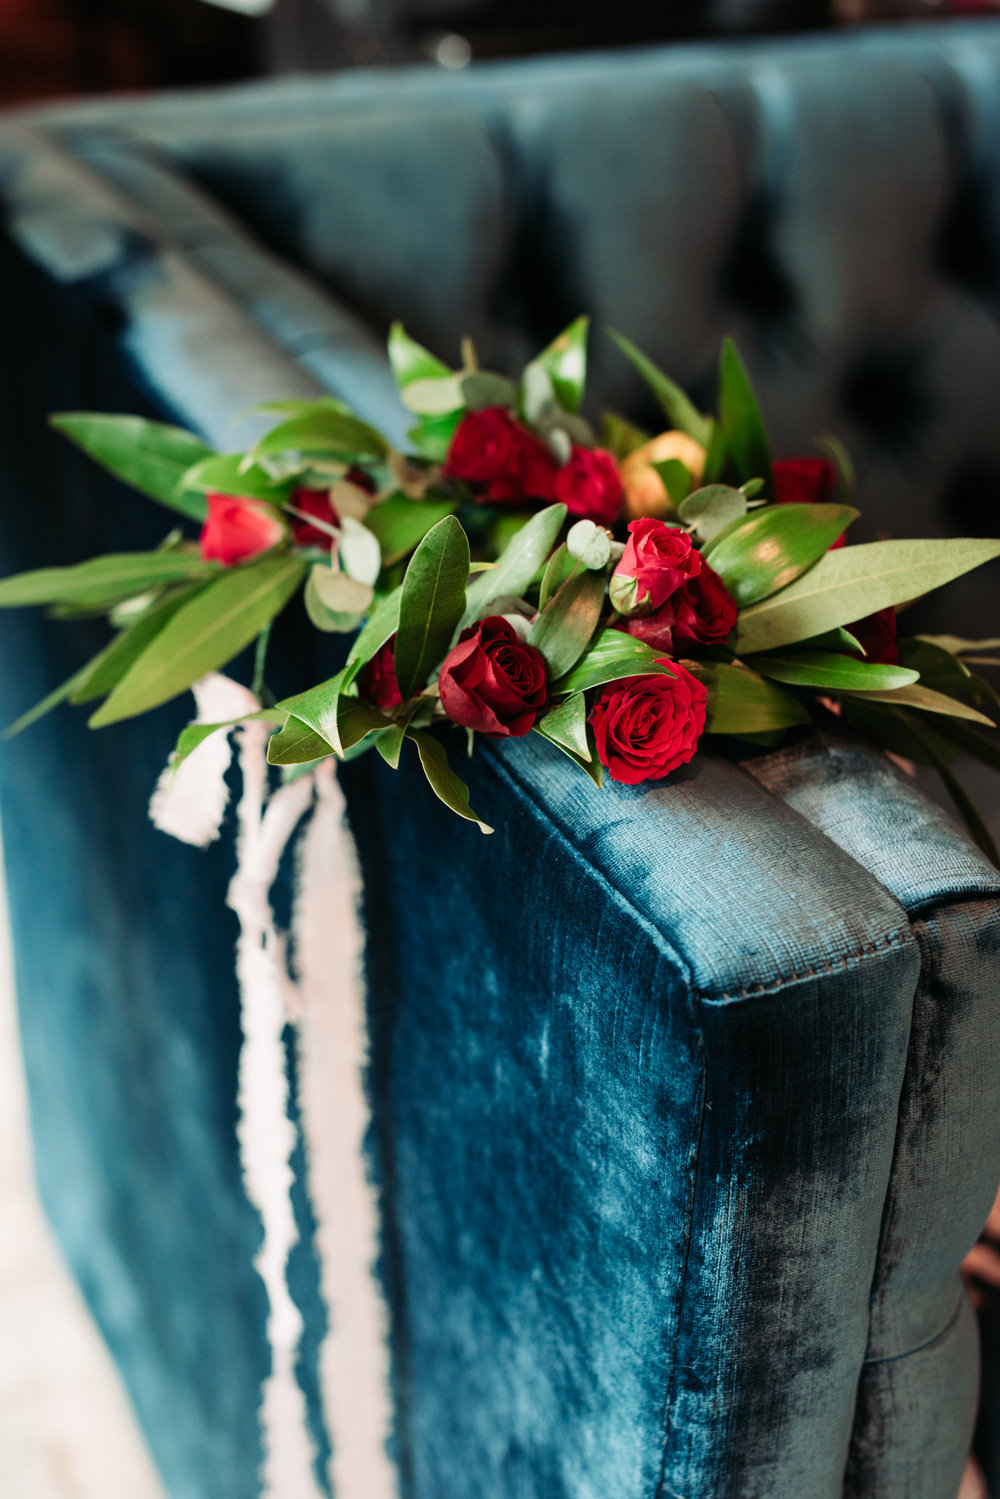 Bennett Brown photography wedding details tulips floral design wedding inspiration blue velvet